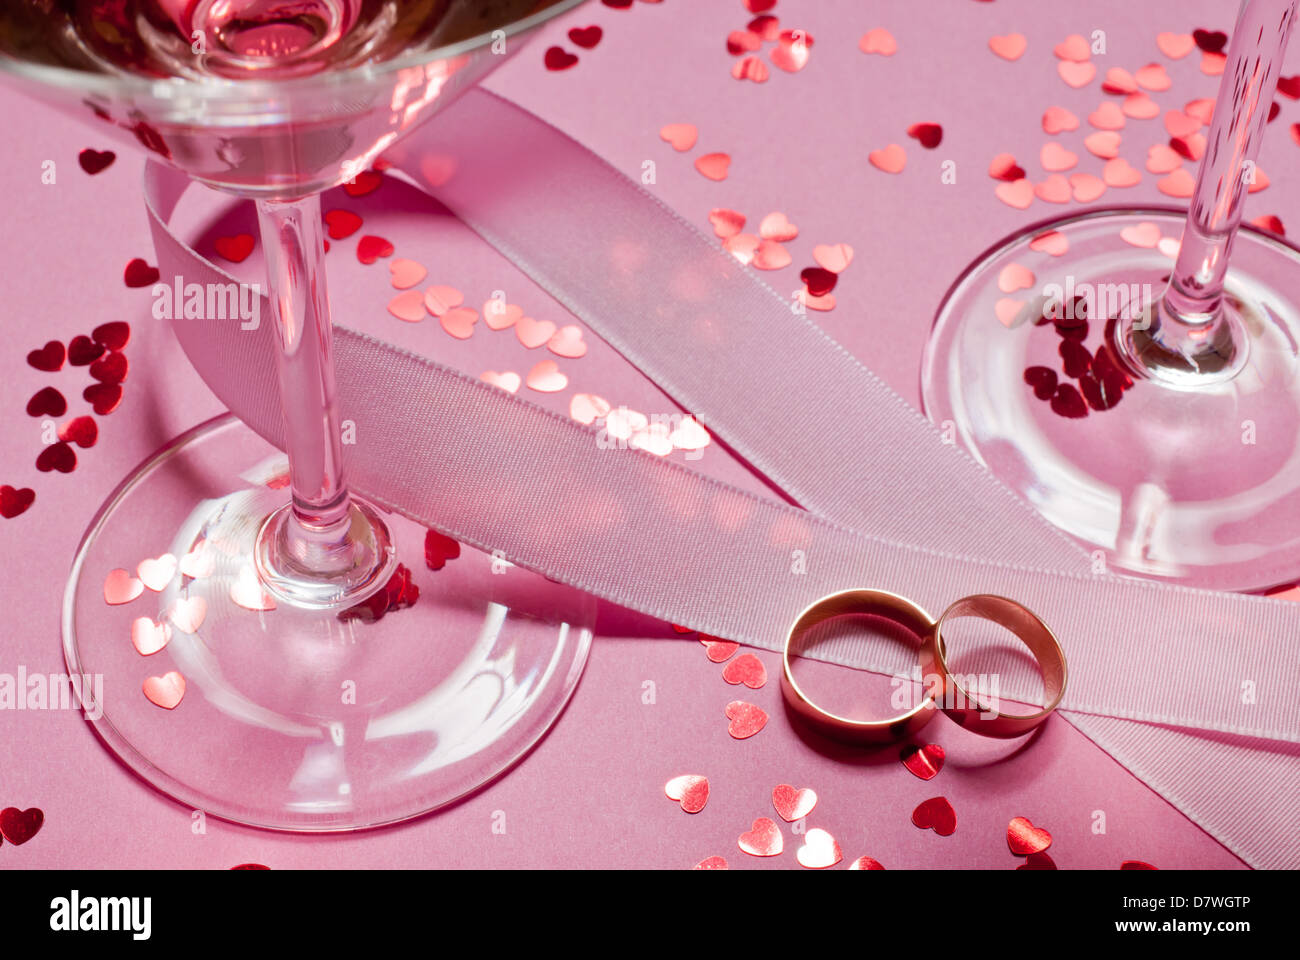 Wine Glass Rings Stock Photos & Wine Glass Rings Stock Images - Alamy